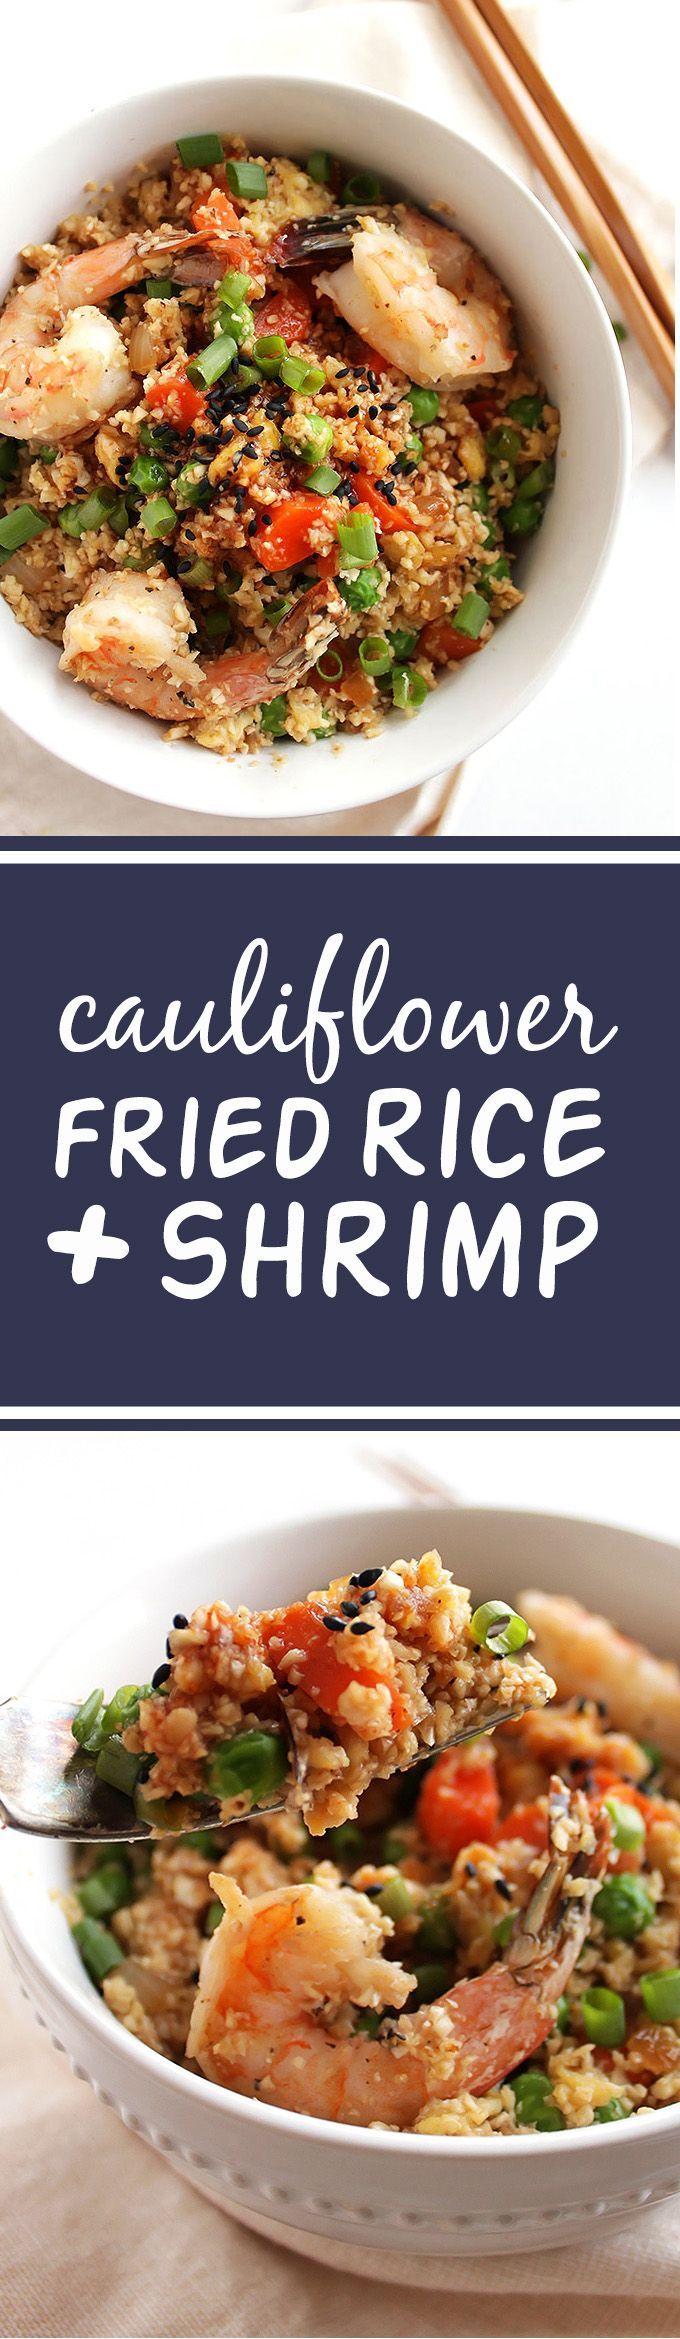 Cauliflower Fried Rice with Shrimp - The perfect weeknight meal! This recipe only takes 30 minutes to make and one pan! A healthier take on traditional fried rice. Packed with veggies! Gluten Free/ Dairy Free | http://robustrecipes.com